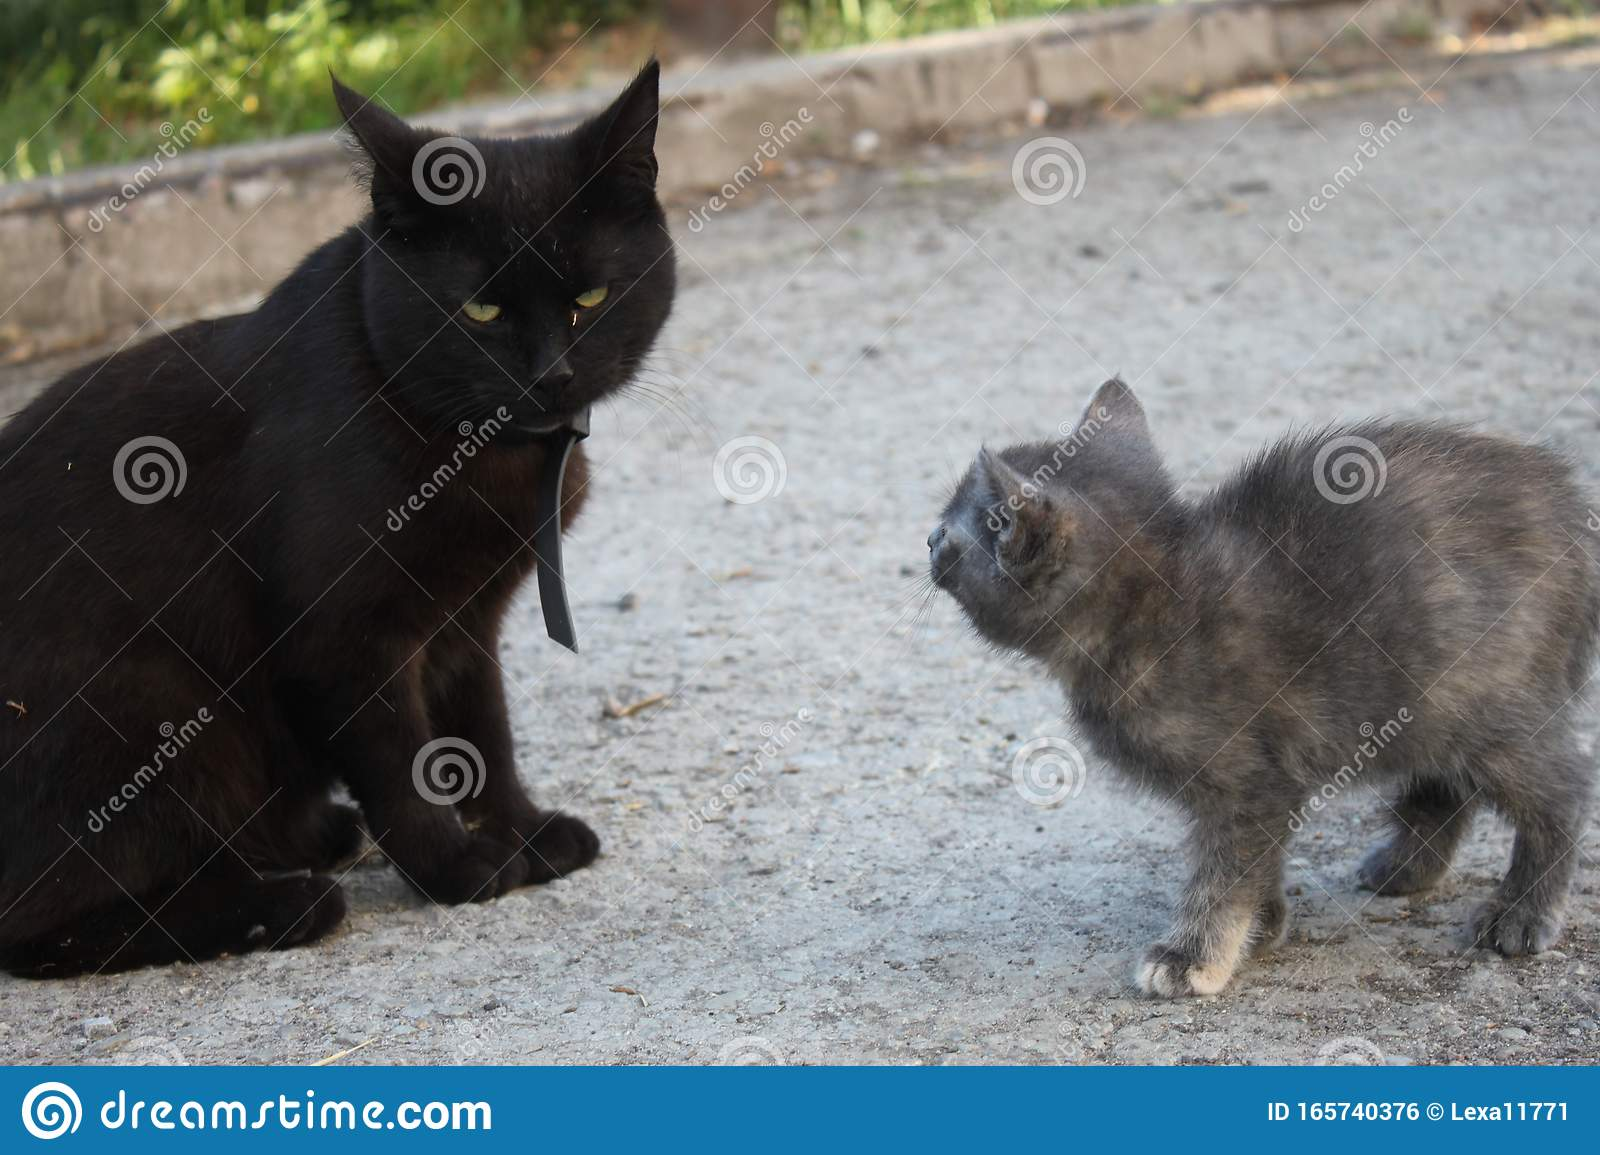 Big Black Cat And Kitten Met Background Stock Photo Image Of Furry Expression 165740376